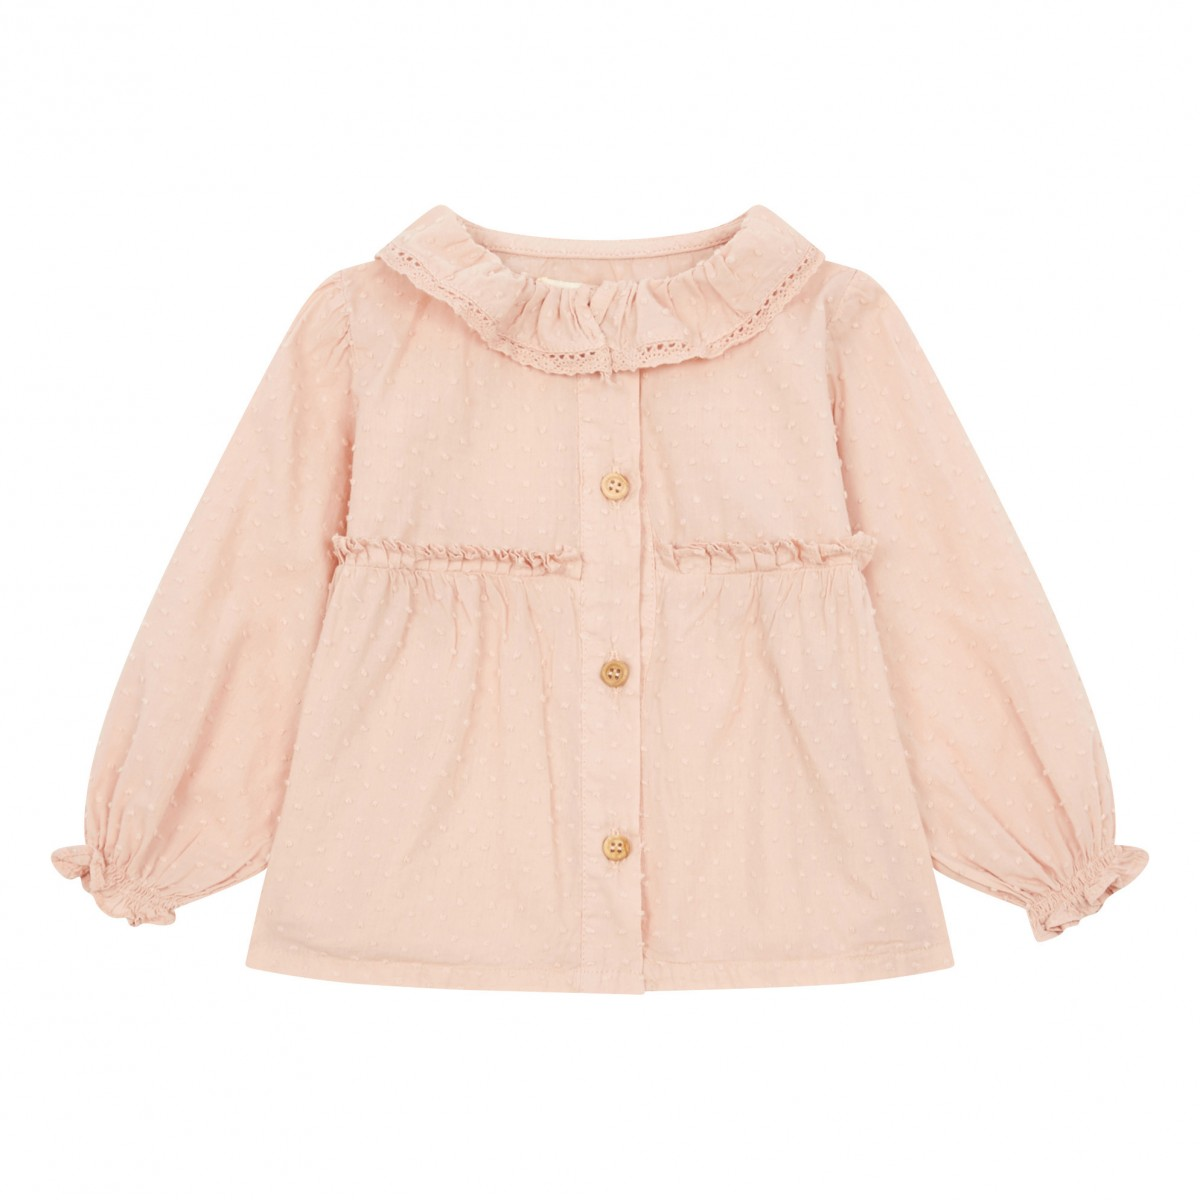 Adorable Pale Pink Blouse